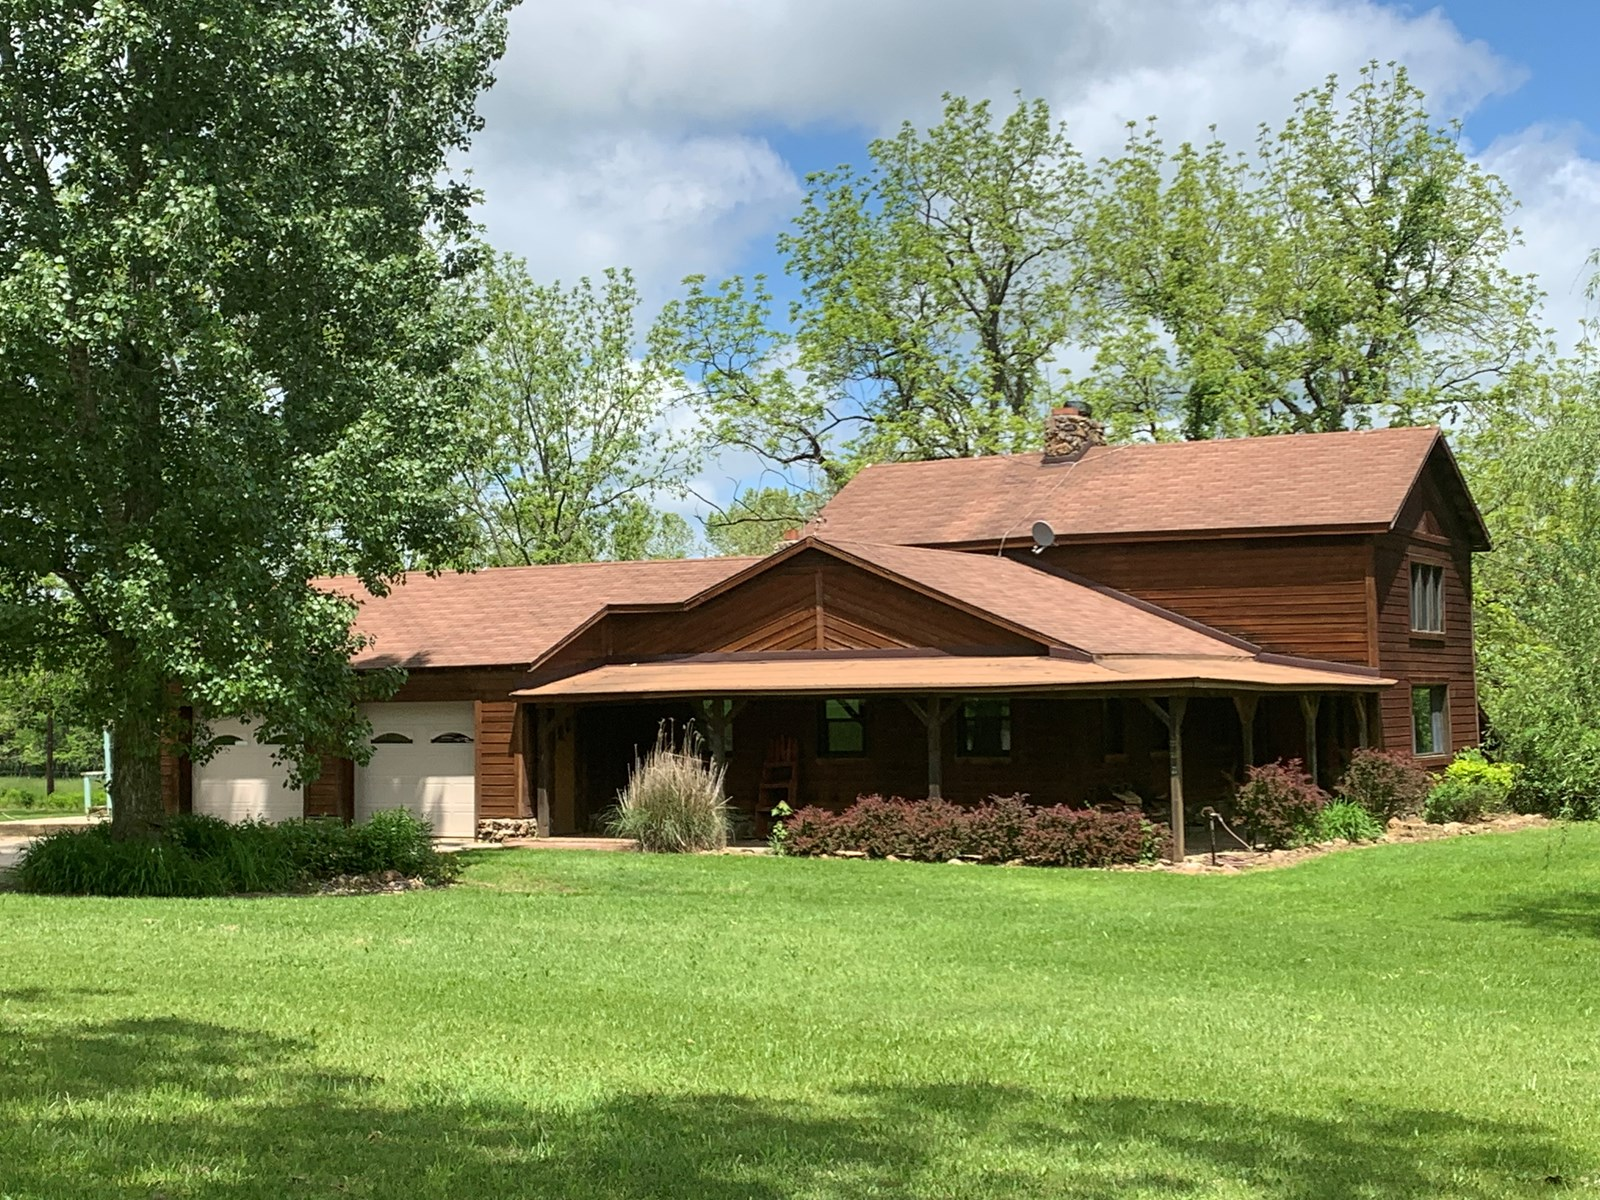 Home for Sale in Southern Missouri Ozarks With Acreage!